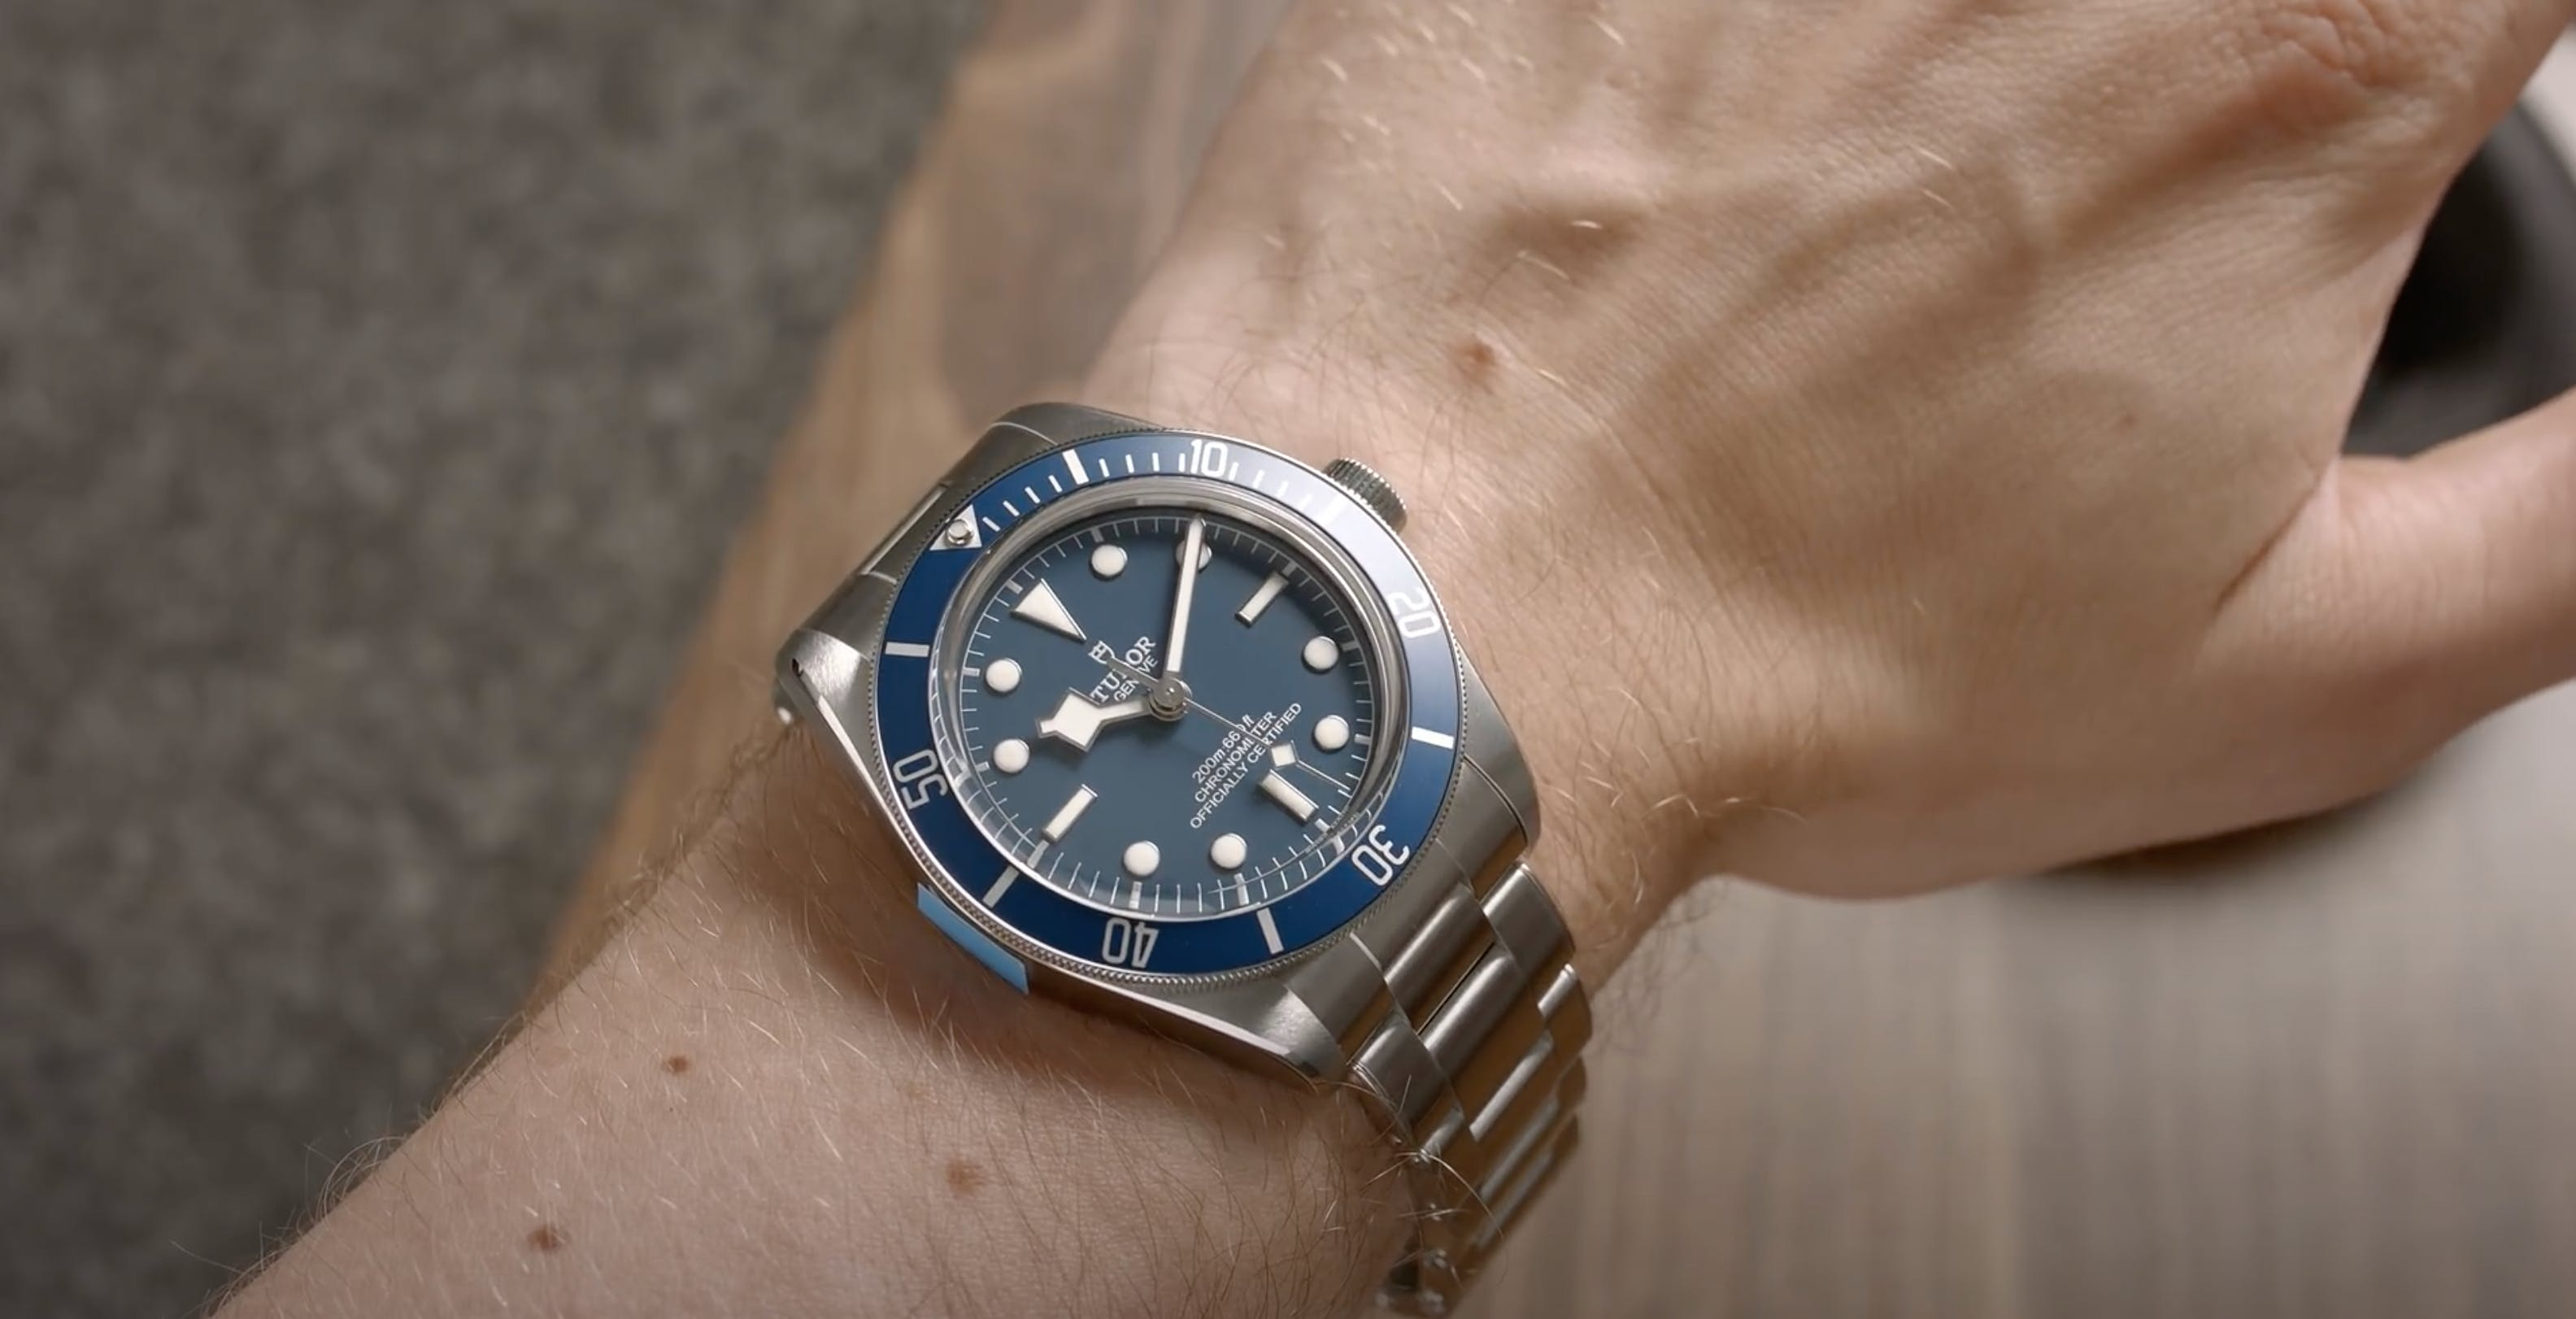 Tudor Black Bay 58 Navy Wristshot, Image: WatchVice